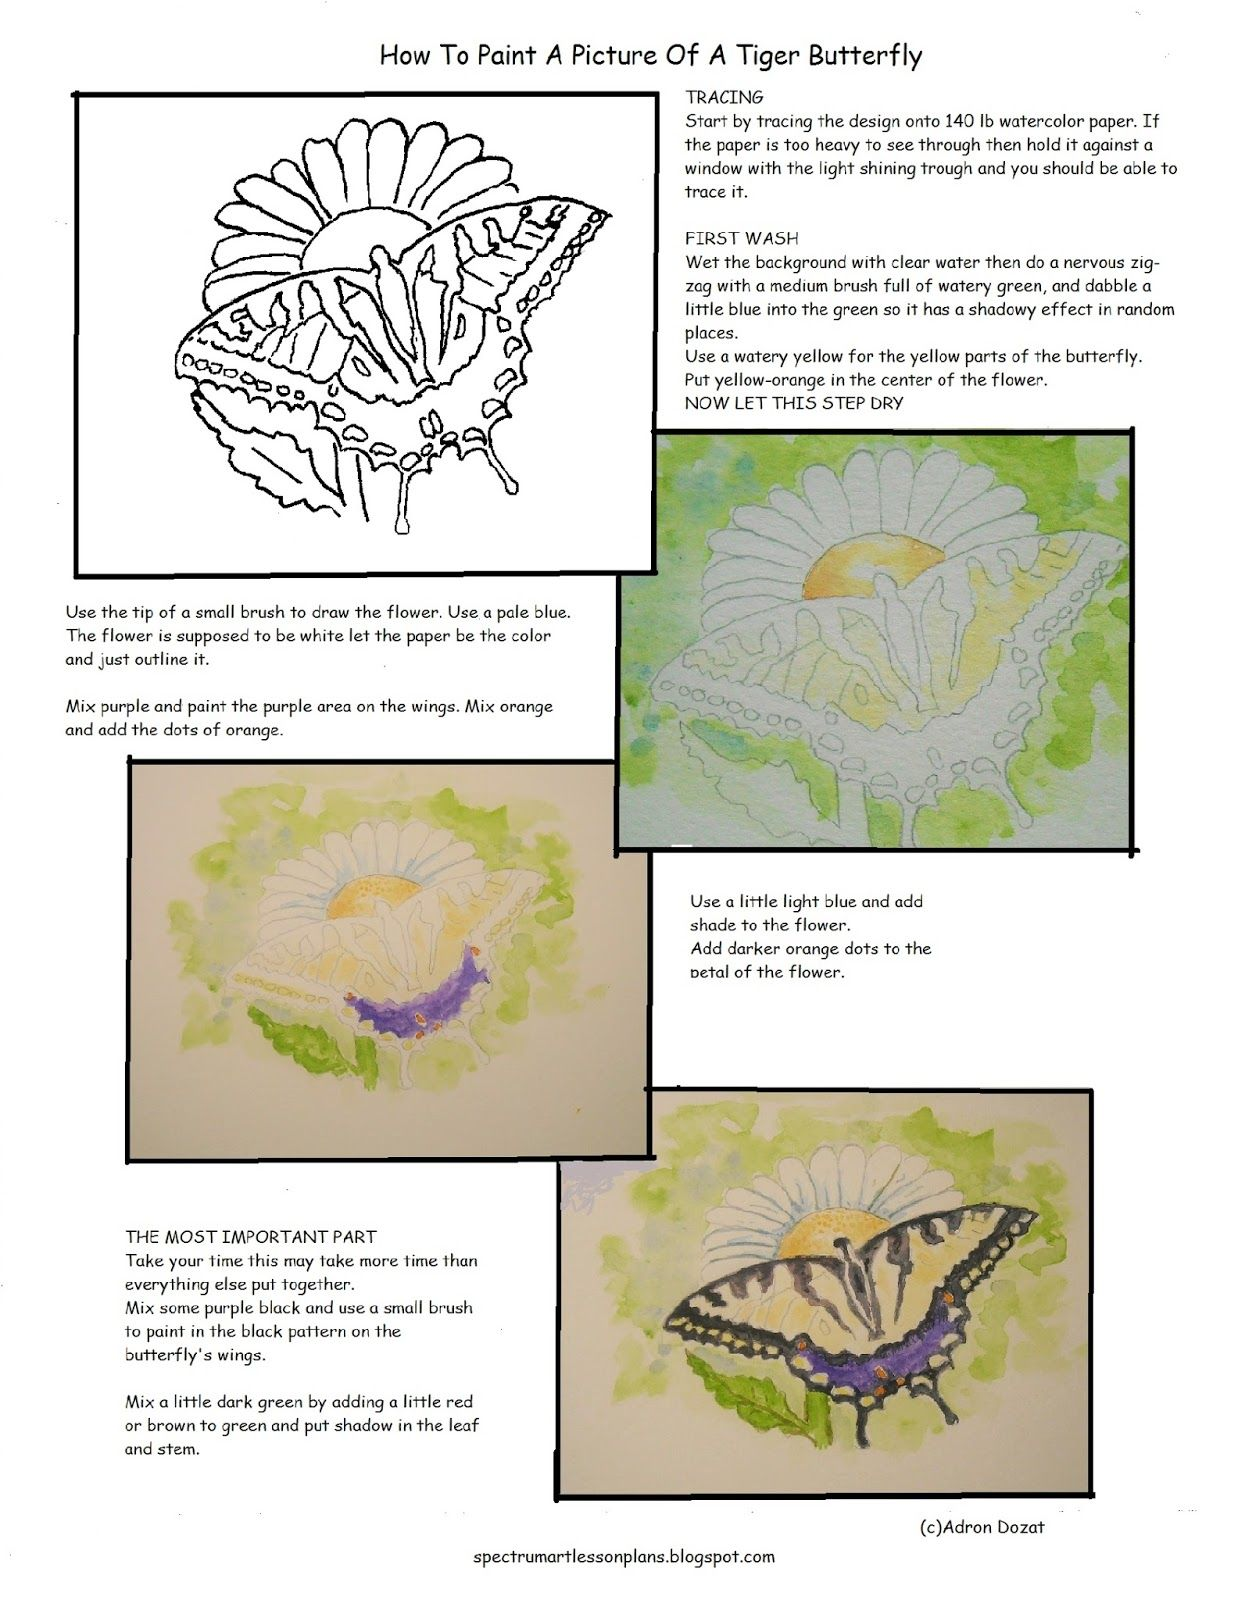 How To Paint A Picture Of A Tiger Butterfly Worksheet